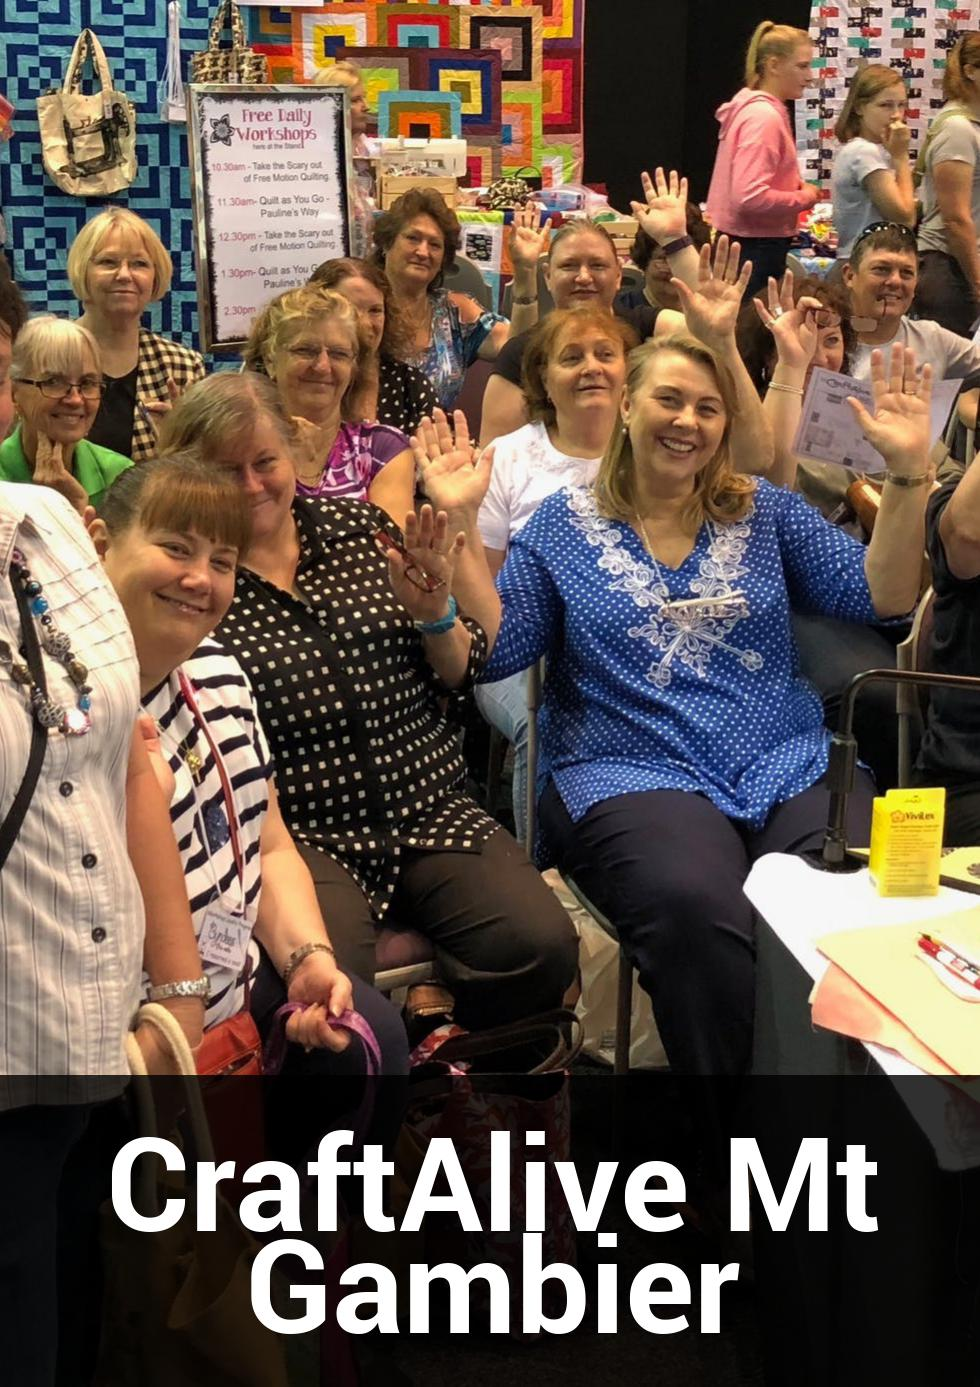 CraftAlive Mt Gambier at Mount Gambier Showgrounds